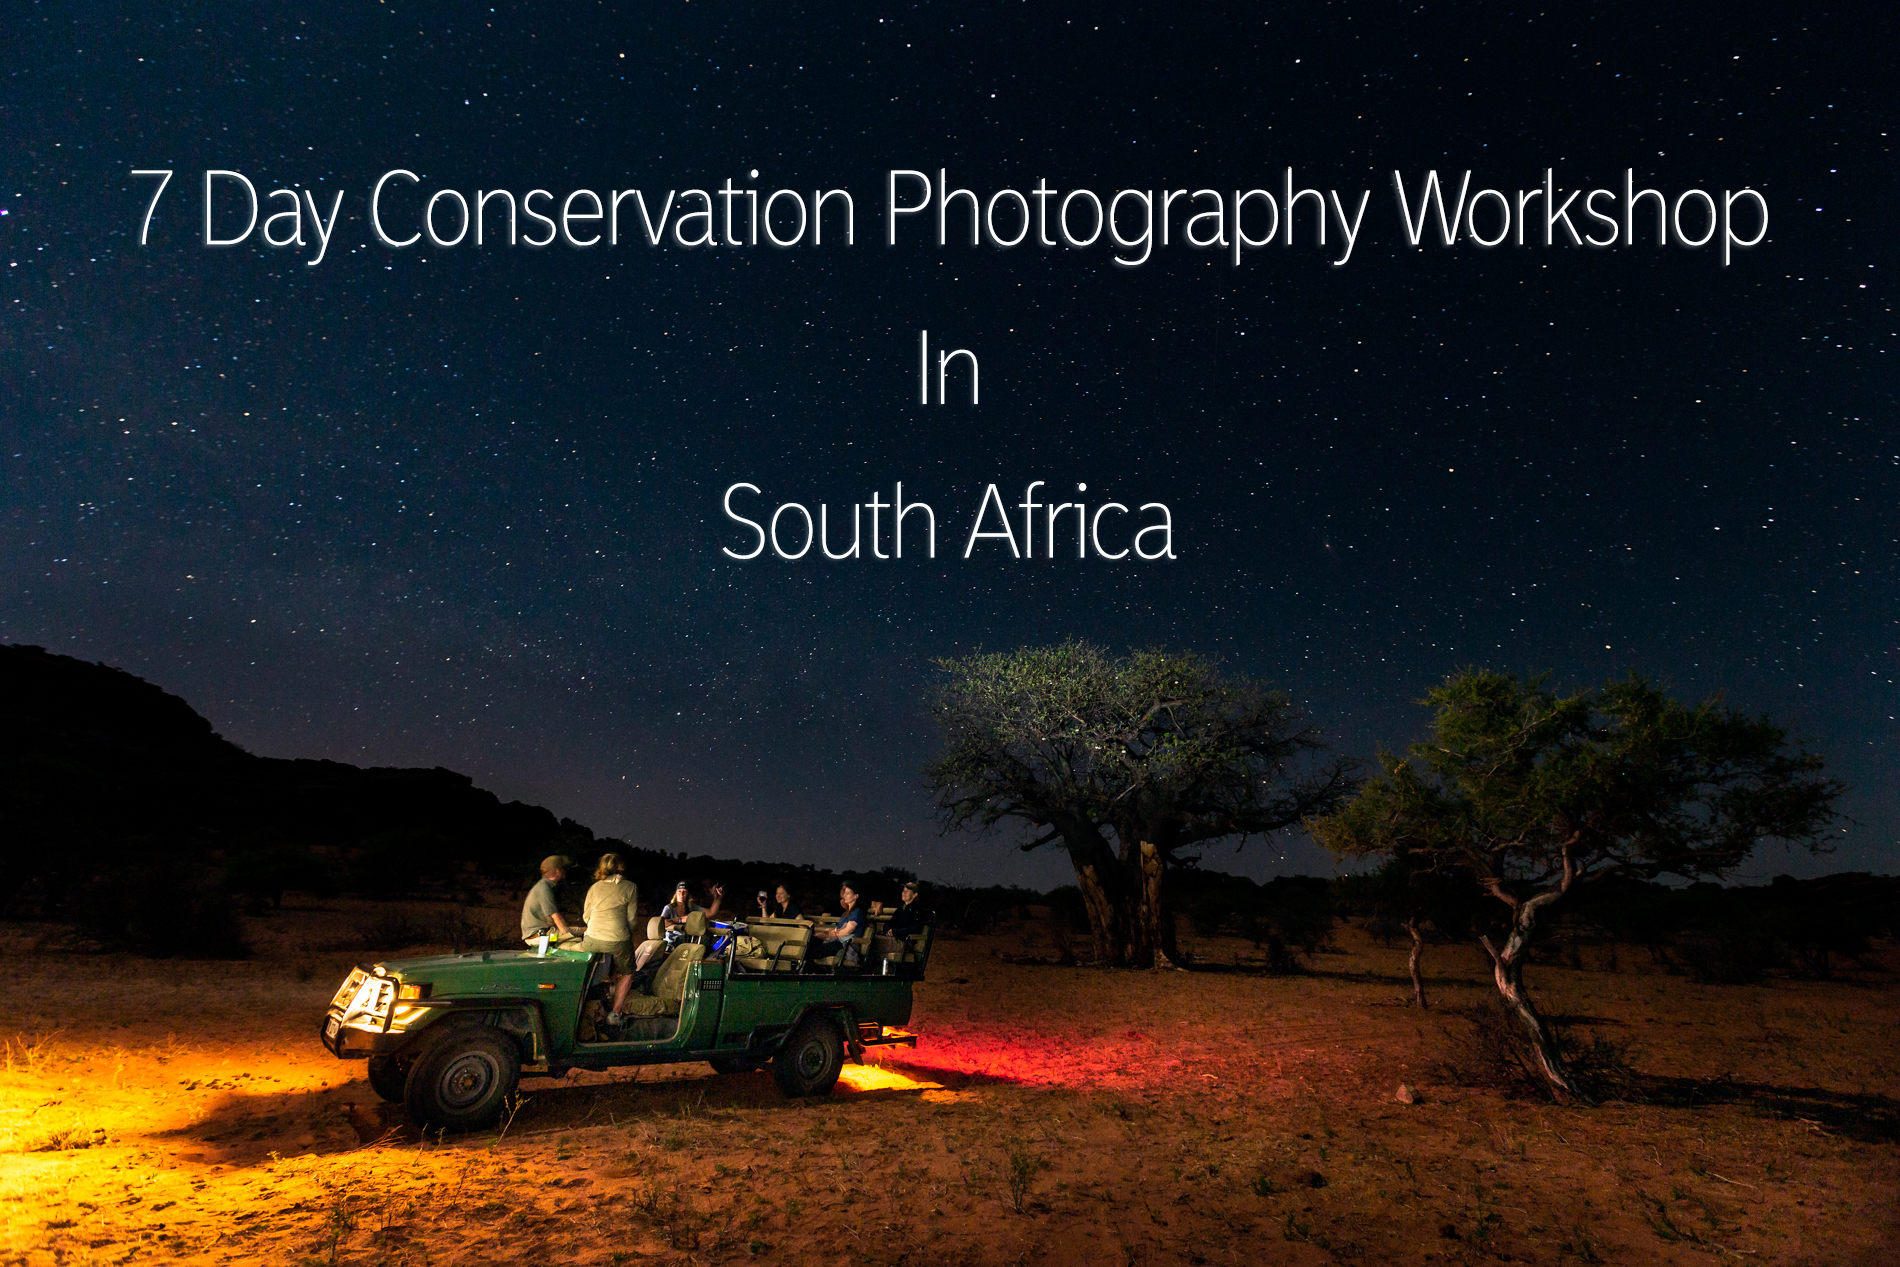 Photography workshop in south africa by greengraf photography.jpg